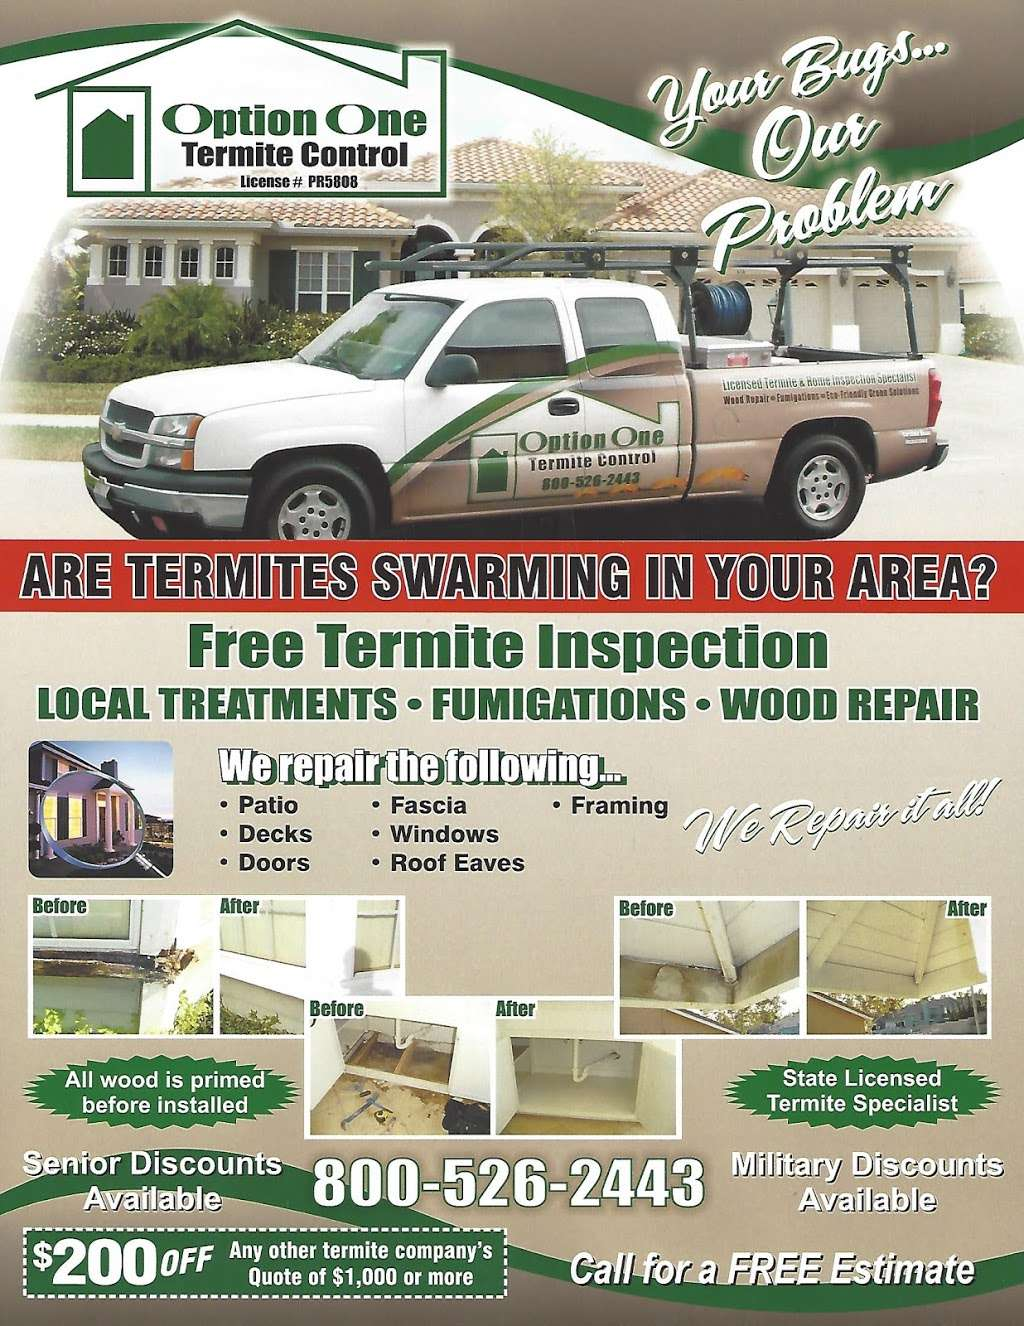 Option One Termite Control - home goods store  | Photo 1 of 3 | Address: 977 Olive St, Upland, CA 91786, USA | Phone: (909) 297-3551